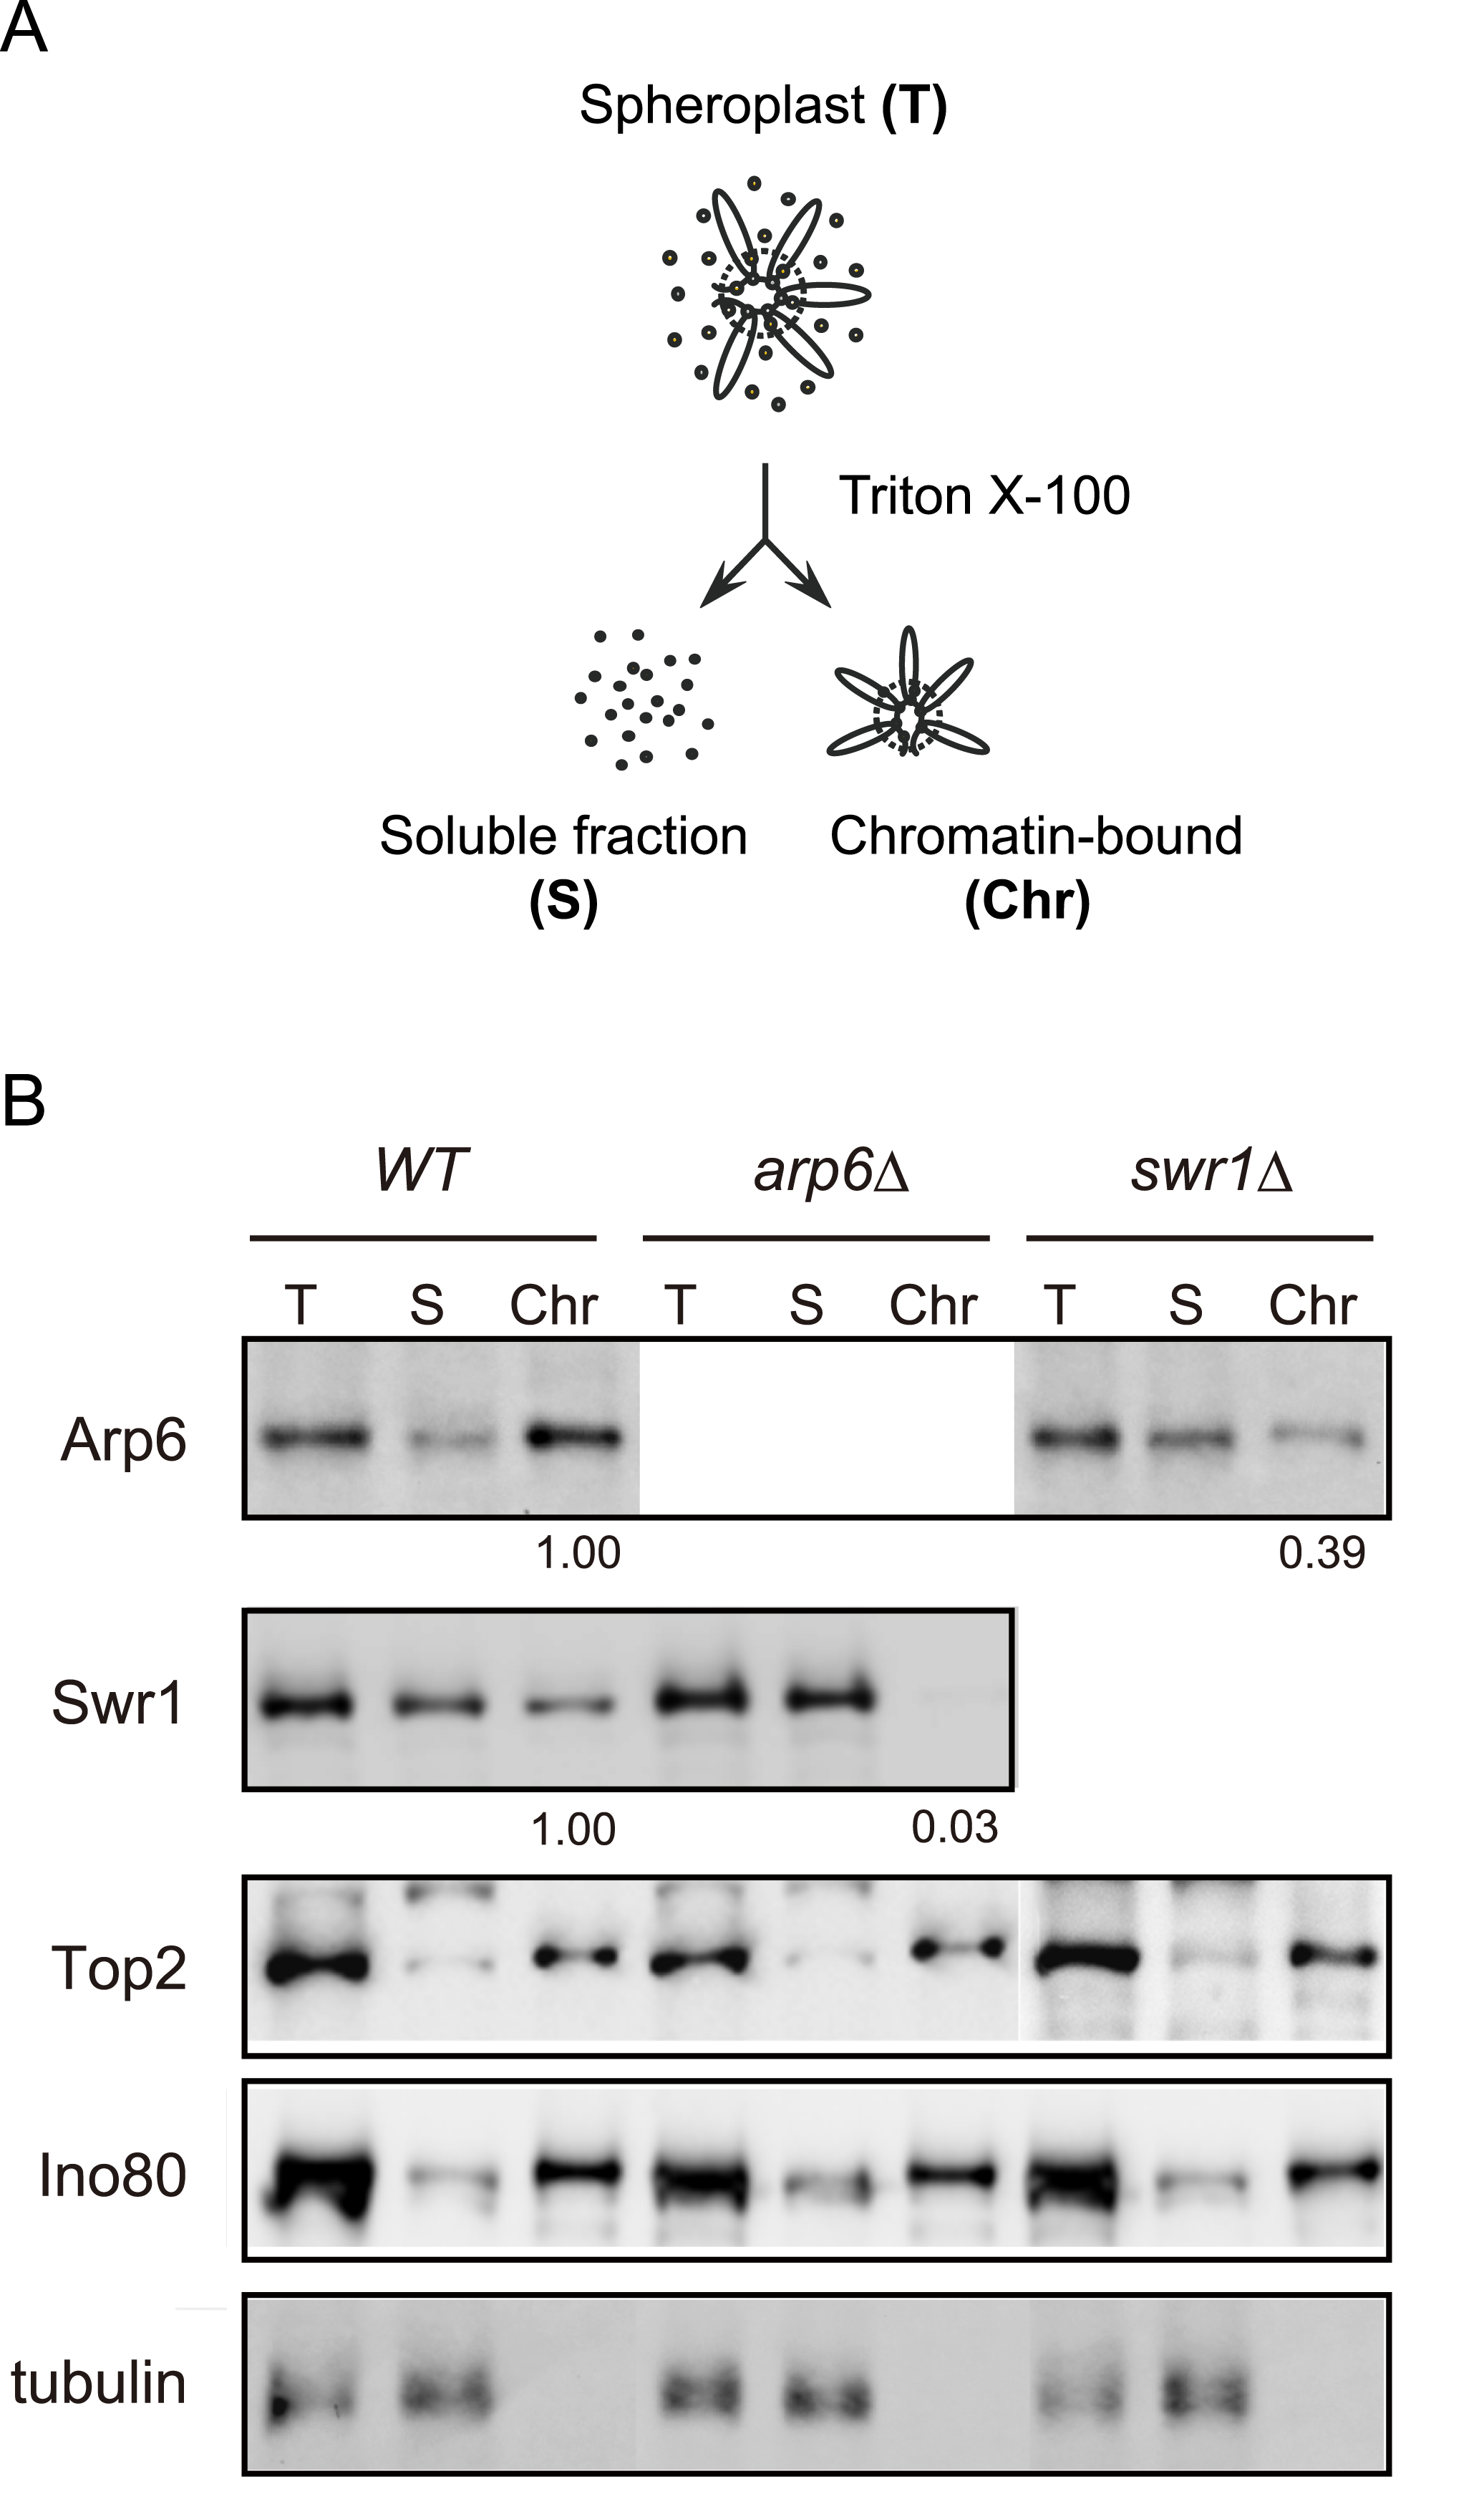 Arp6 partitions between soluble and insoluble chromatin fractions.